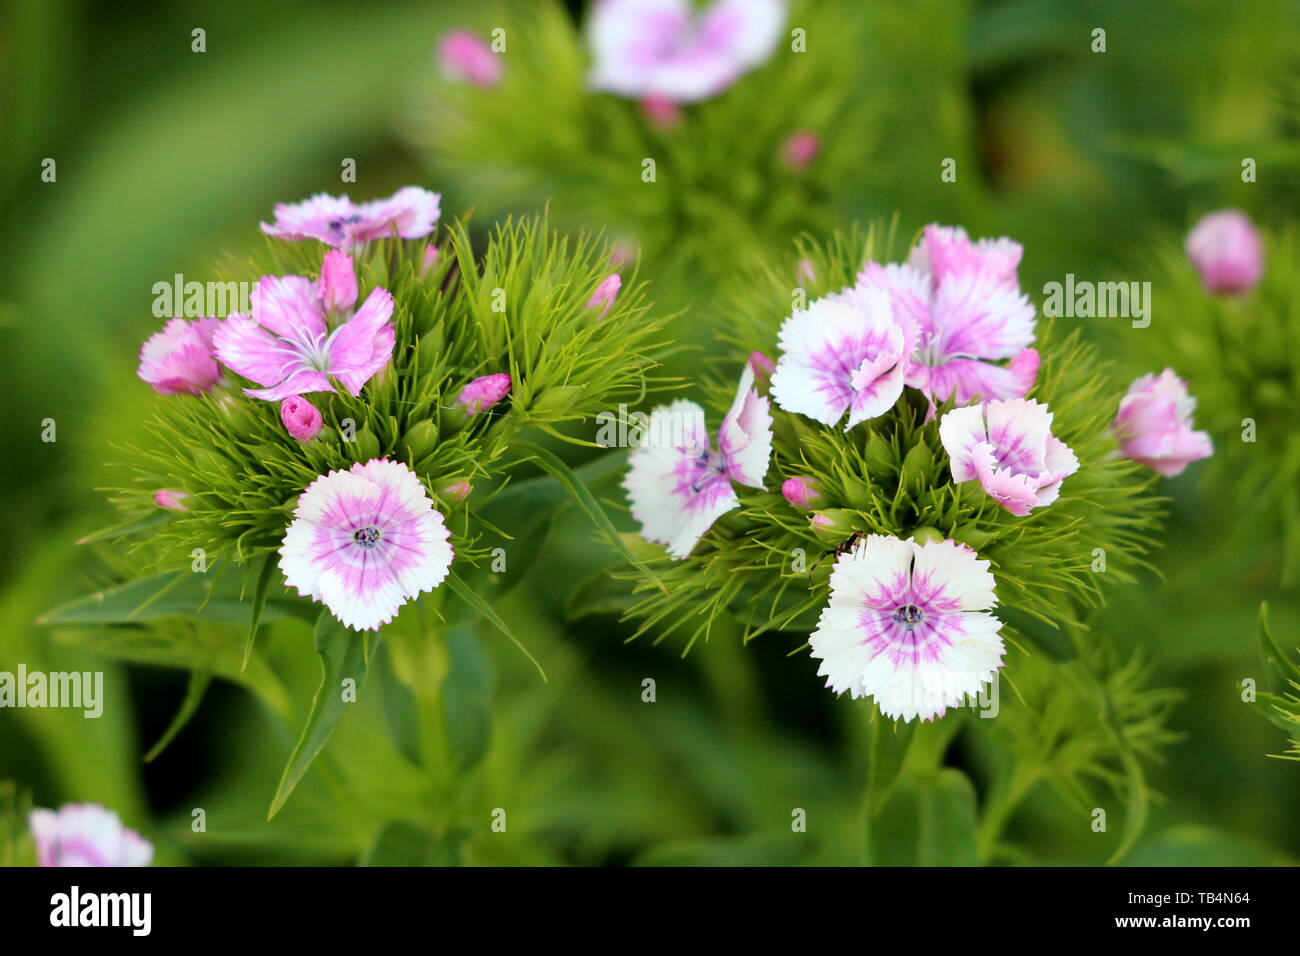 Sweet William or Dianthus barbatus young flowering plants with light pink flowers and green leaves planted in local garden on warm sunny spring day - Stock Image